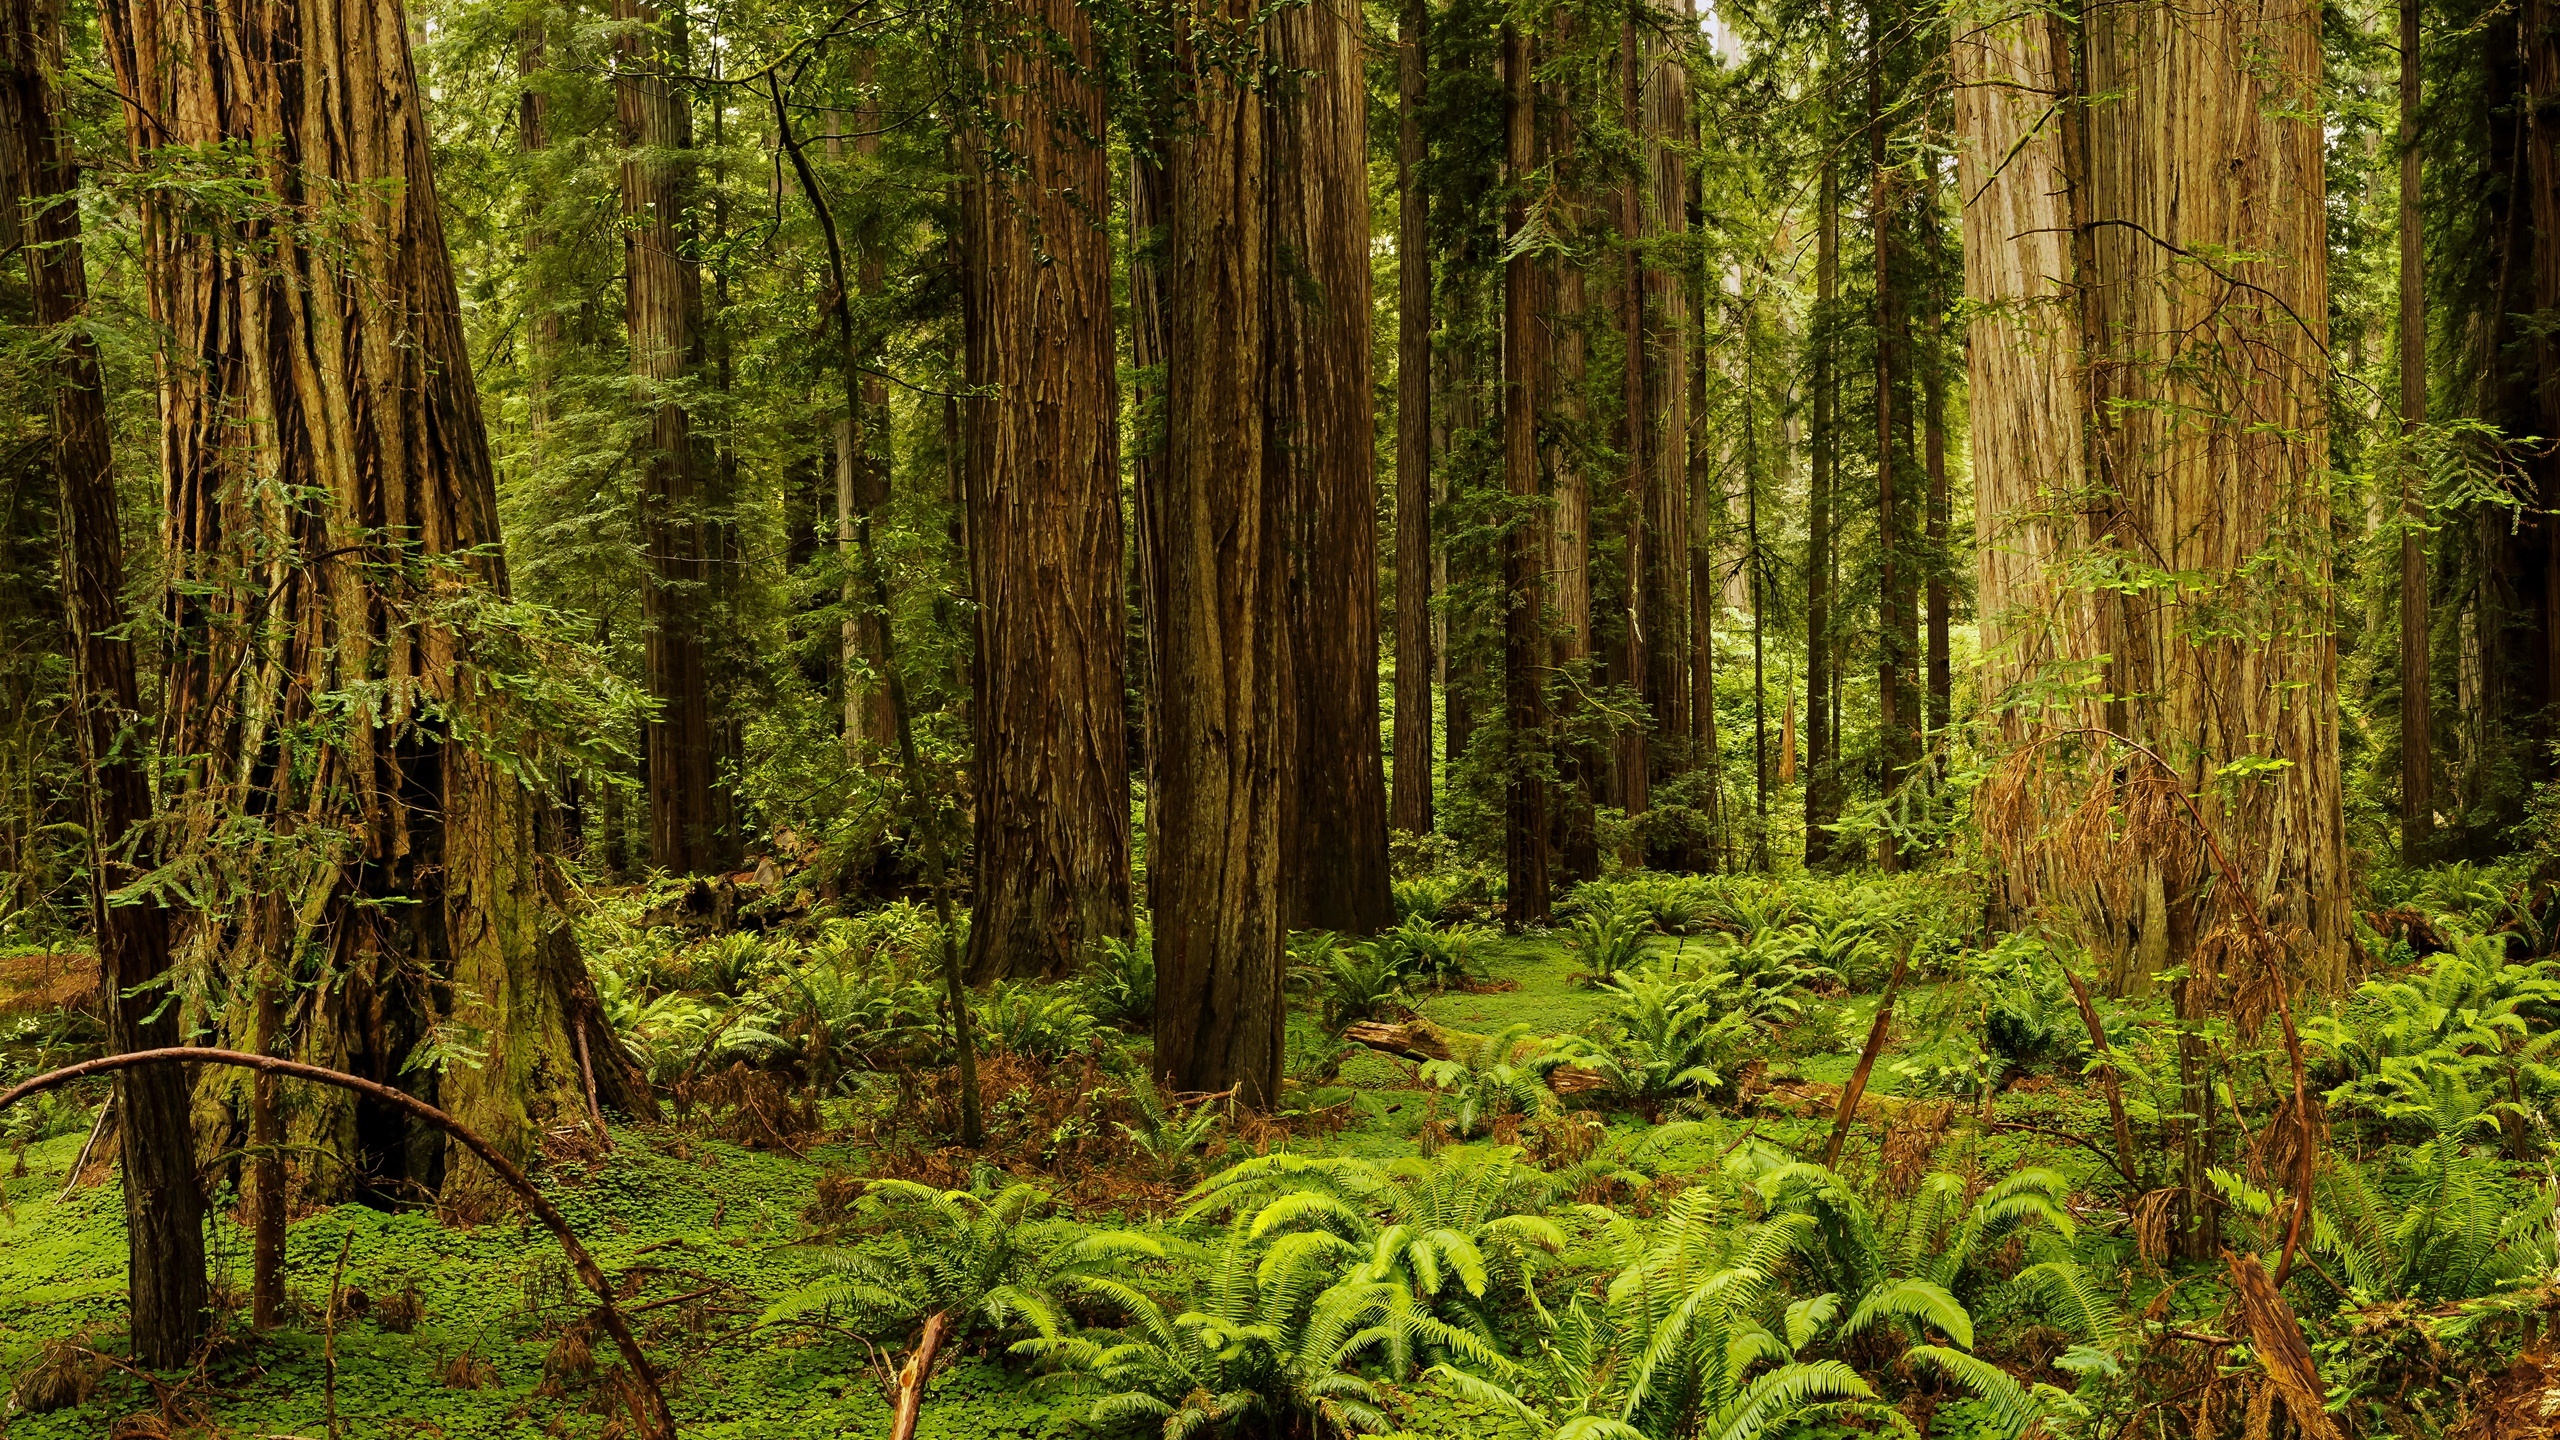 USA California Redwood National And State Parks forest trees 2560x1440